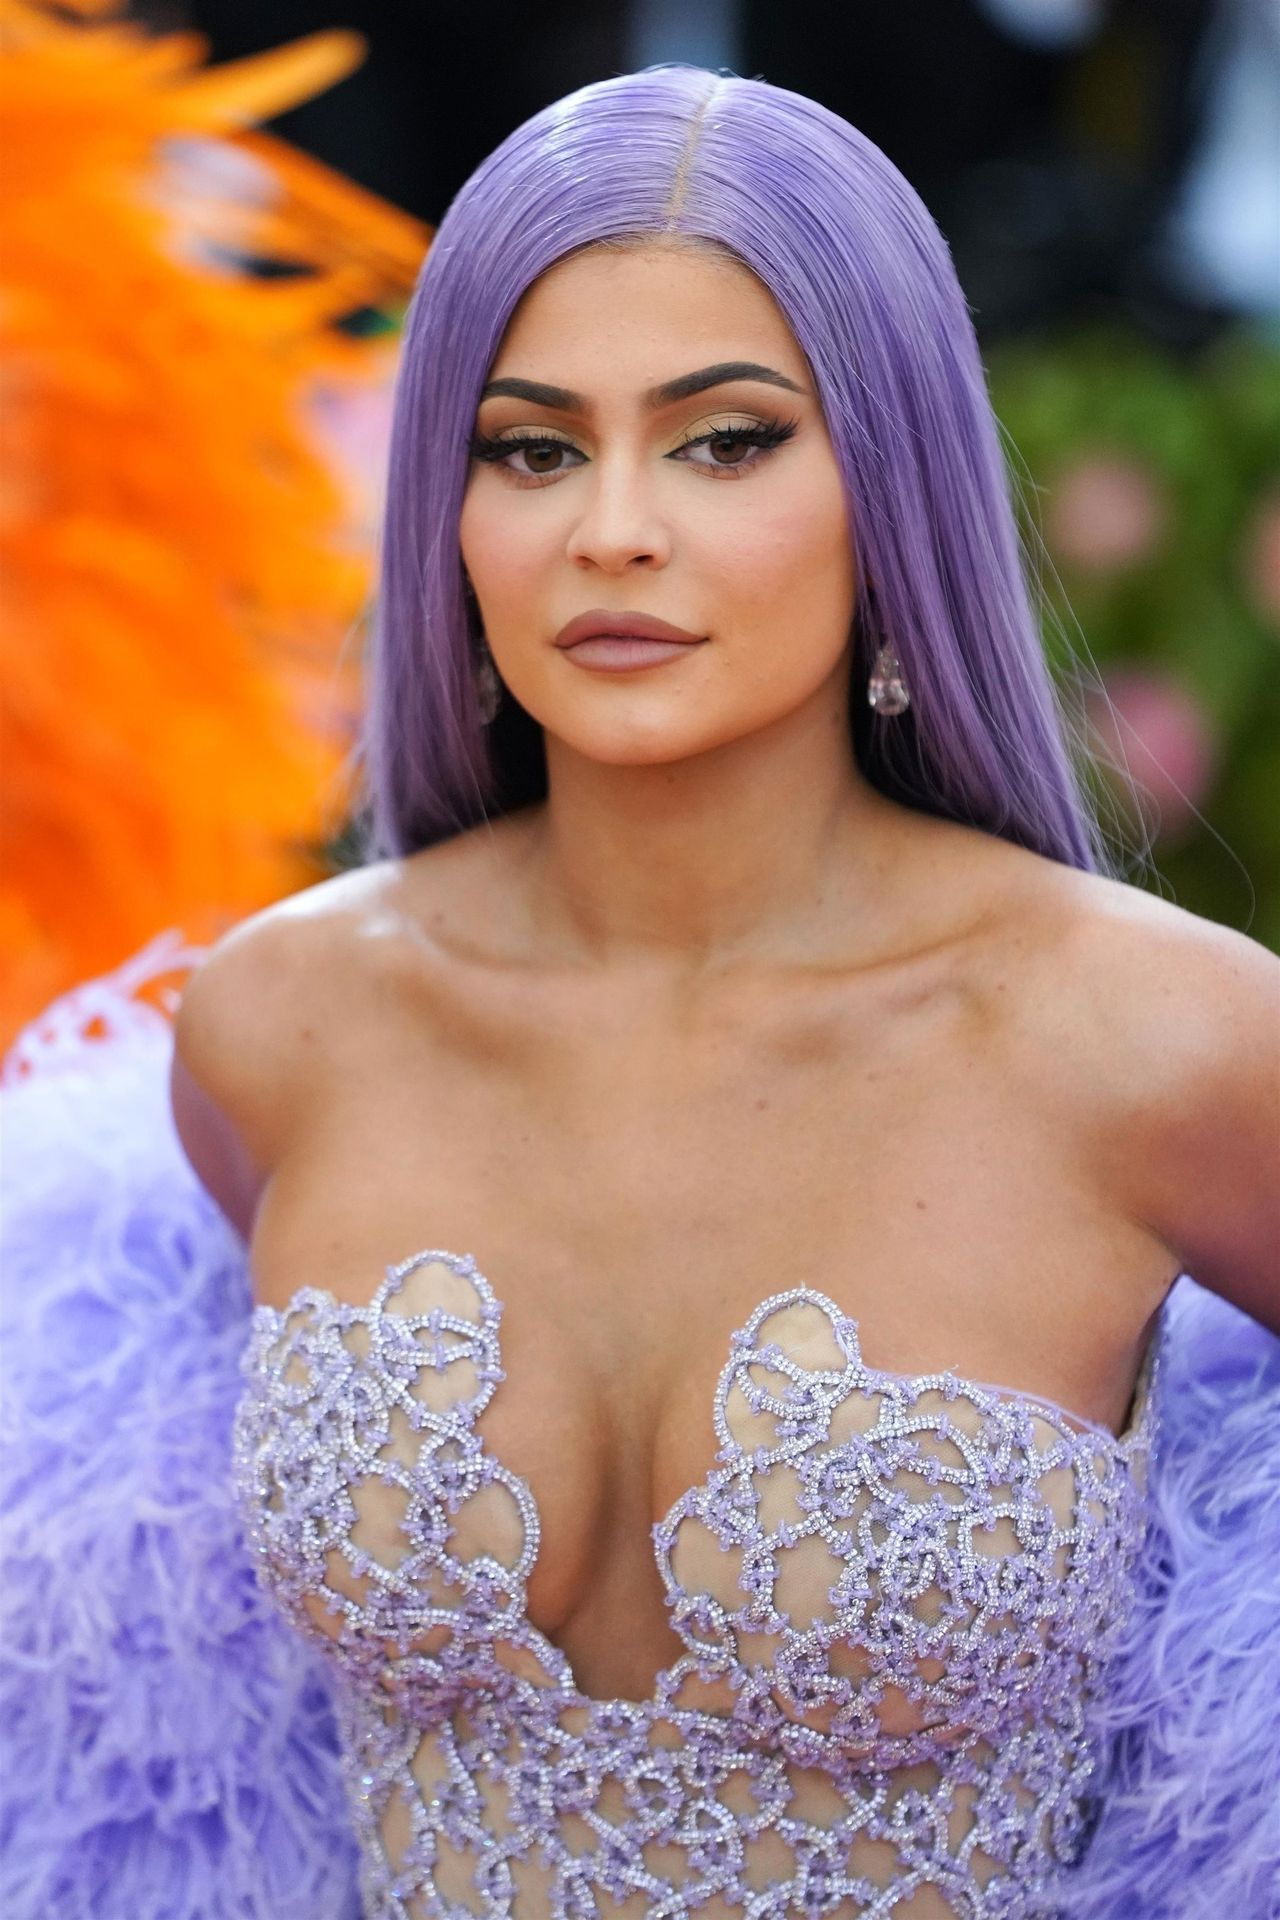 Kylie Jenner @ the MET Gala in New York, 05/06/2019